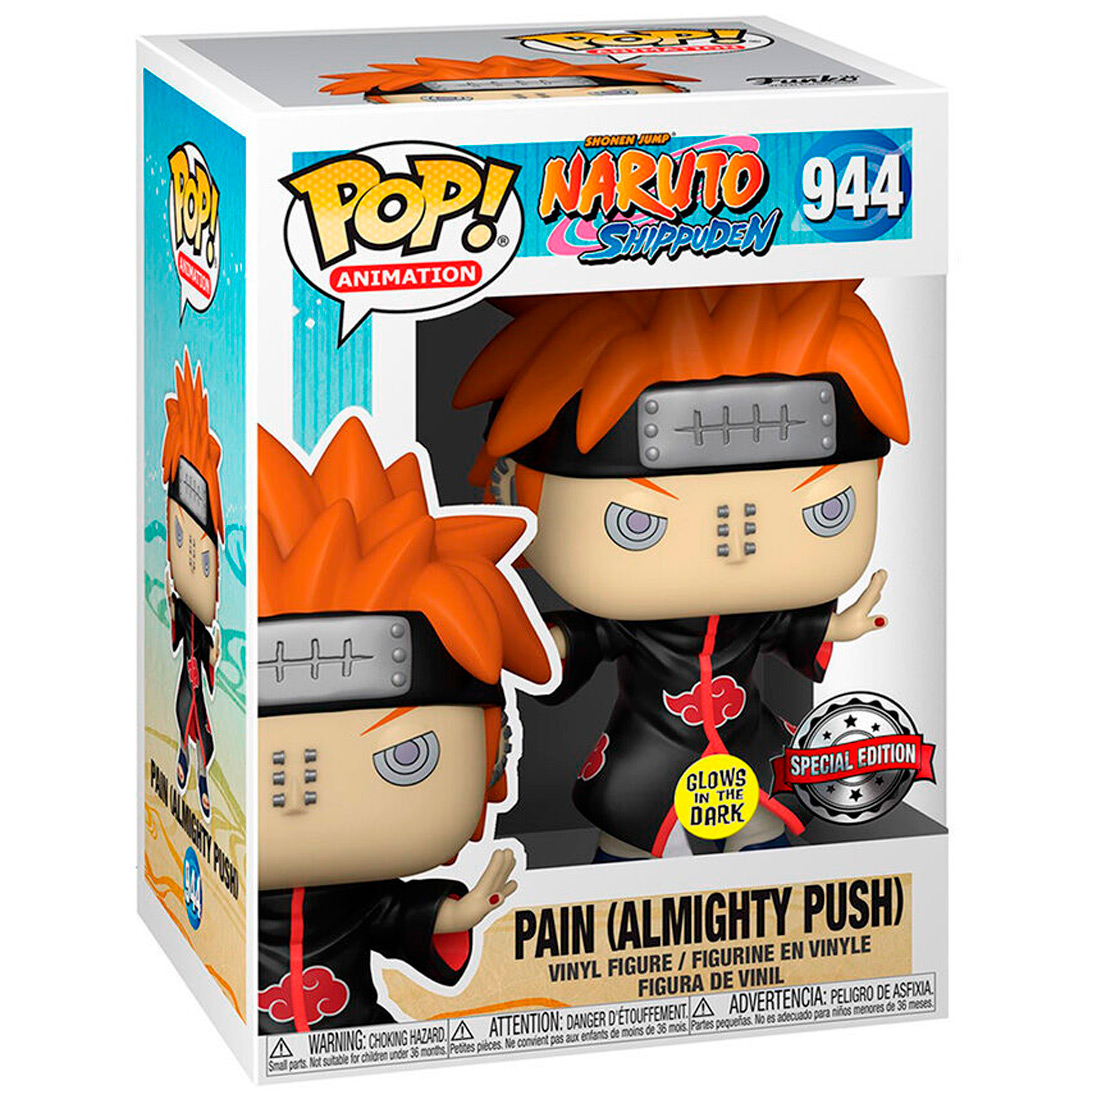 Funko Pop Animation Naruto Shippuden 944 Pain Almighty Push Glows In The Dark Special Edition